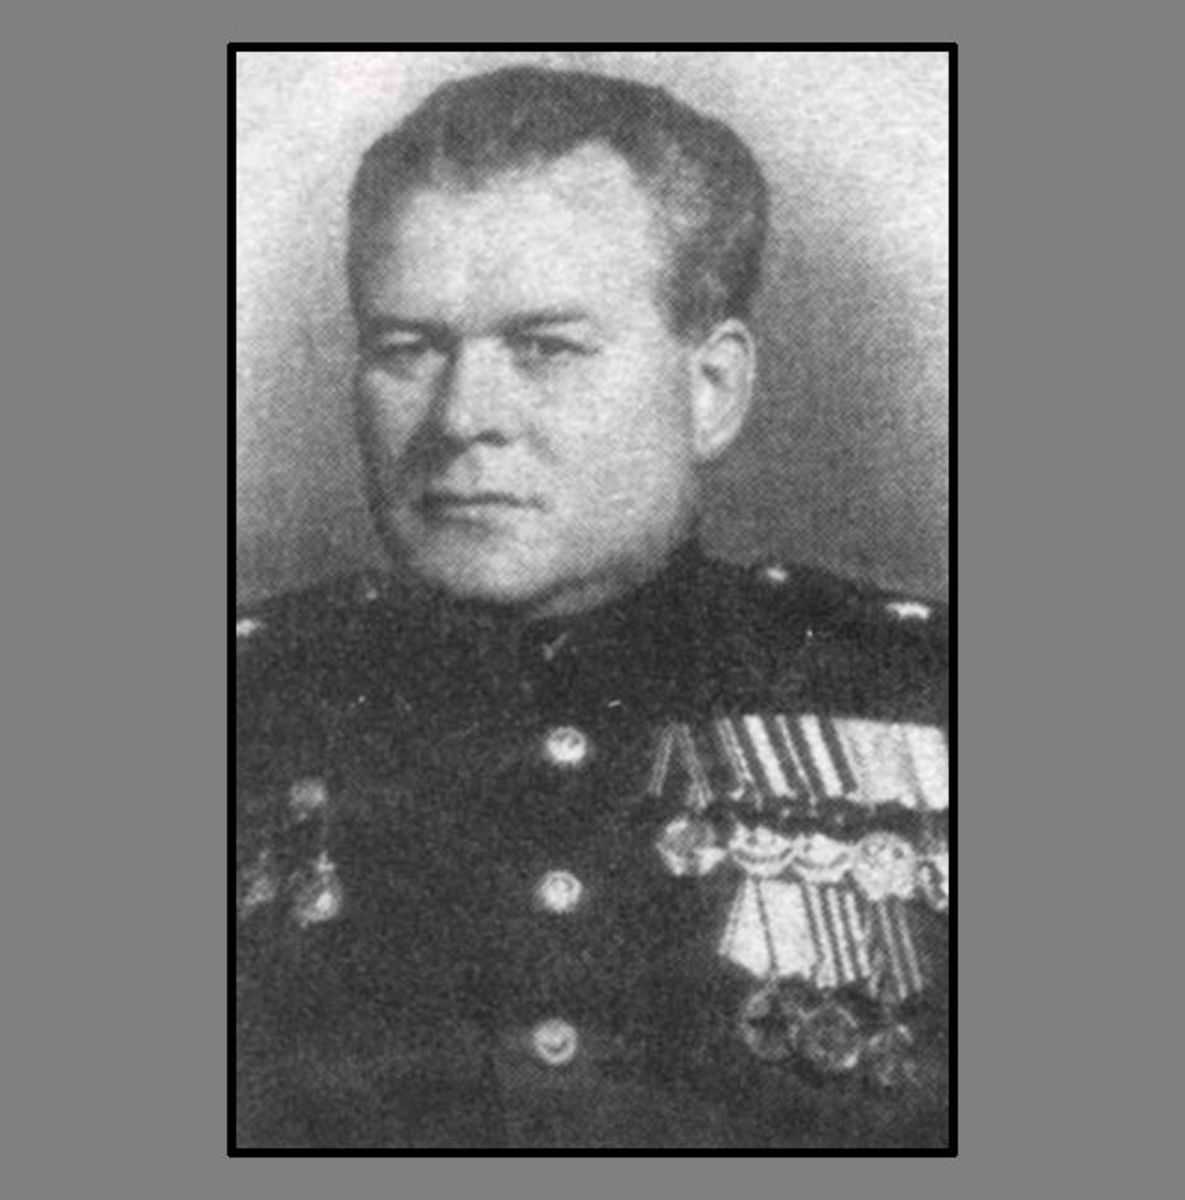 About World War 2: Stalin's Executioner Personally Killed Thousands